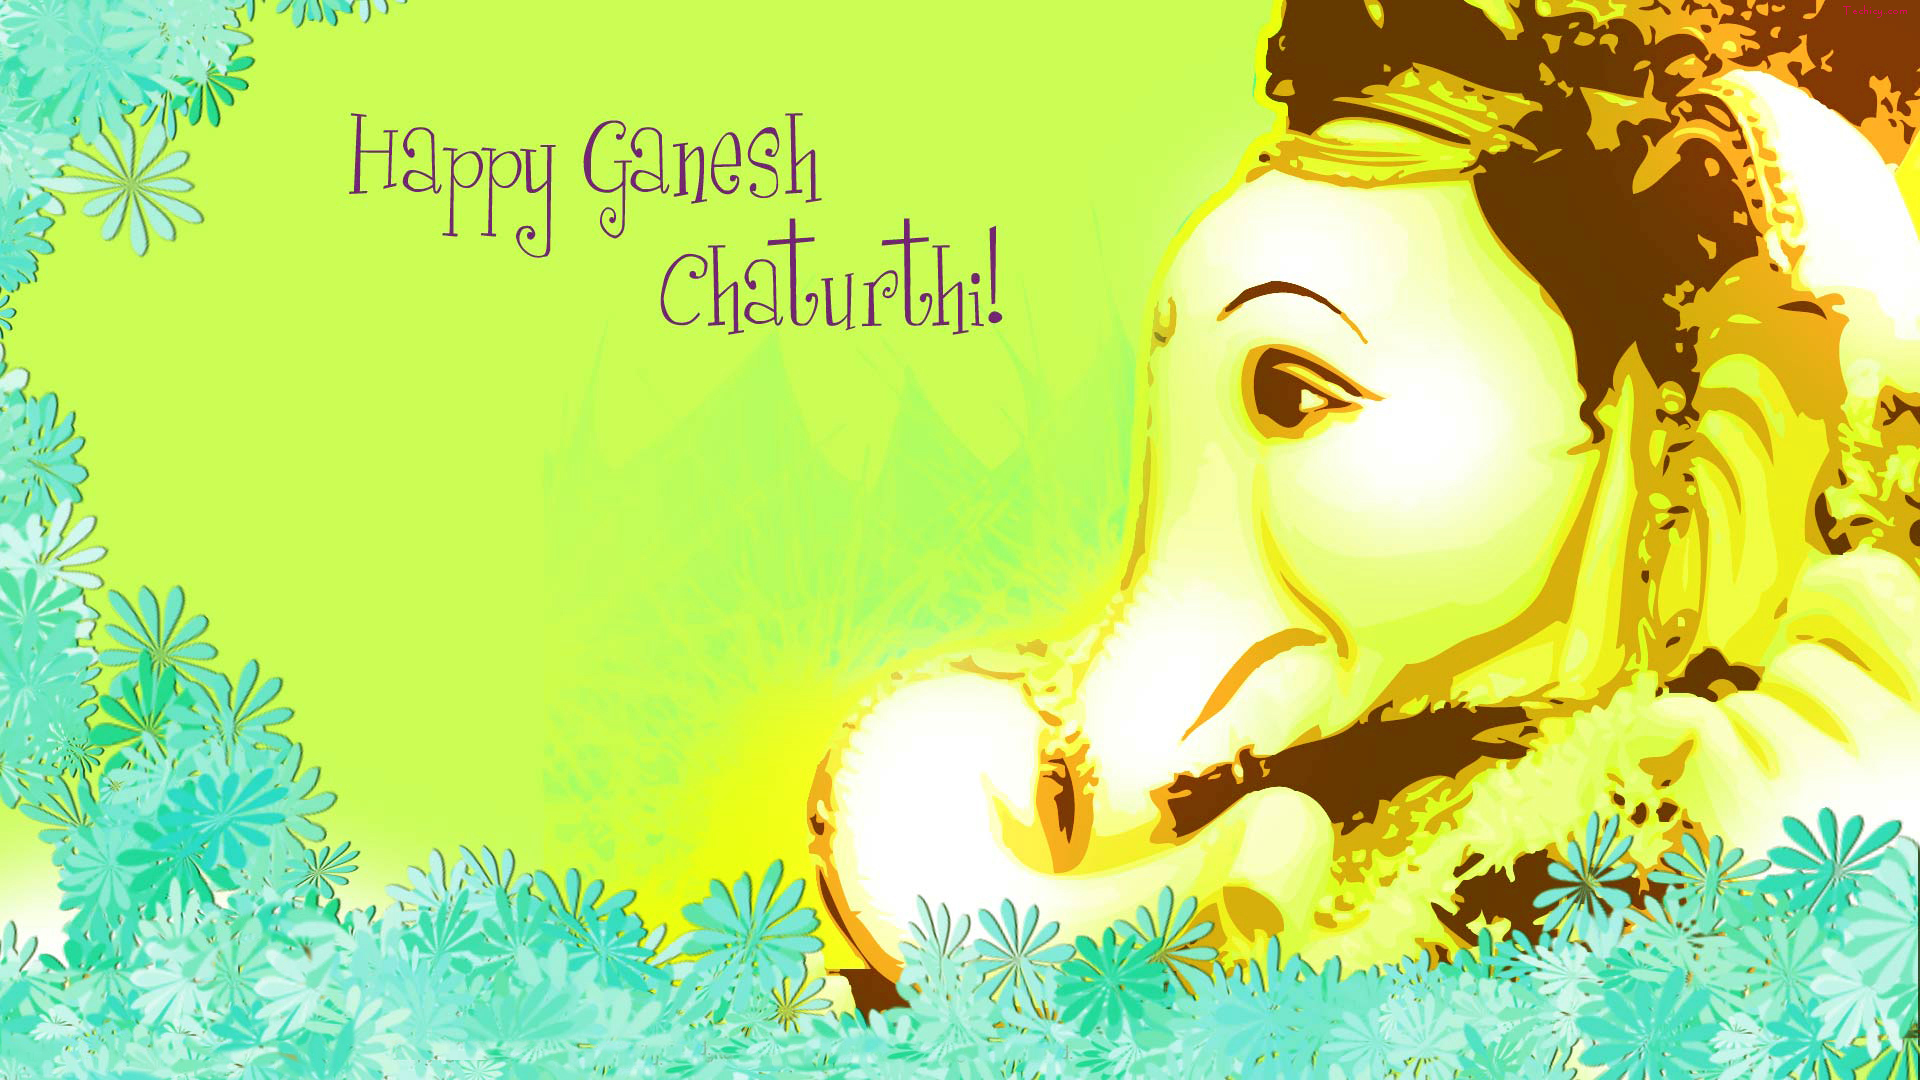 Ganesh Chaturthi Wallpapers For Mobile & PC - Free Download